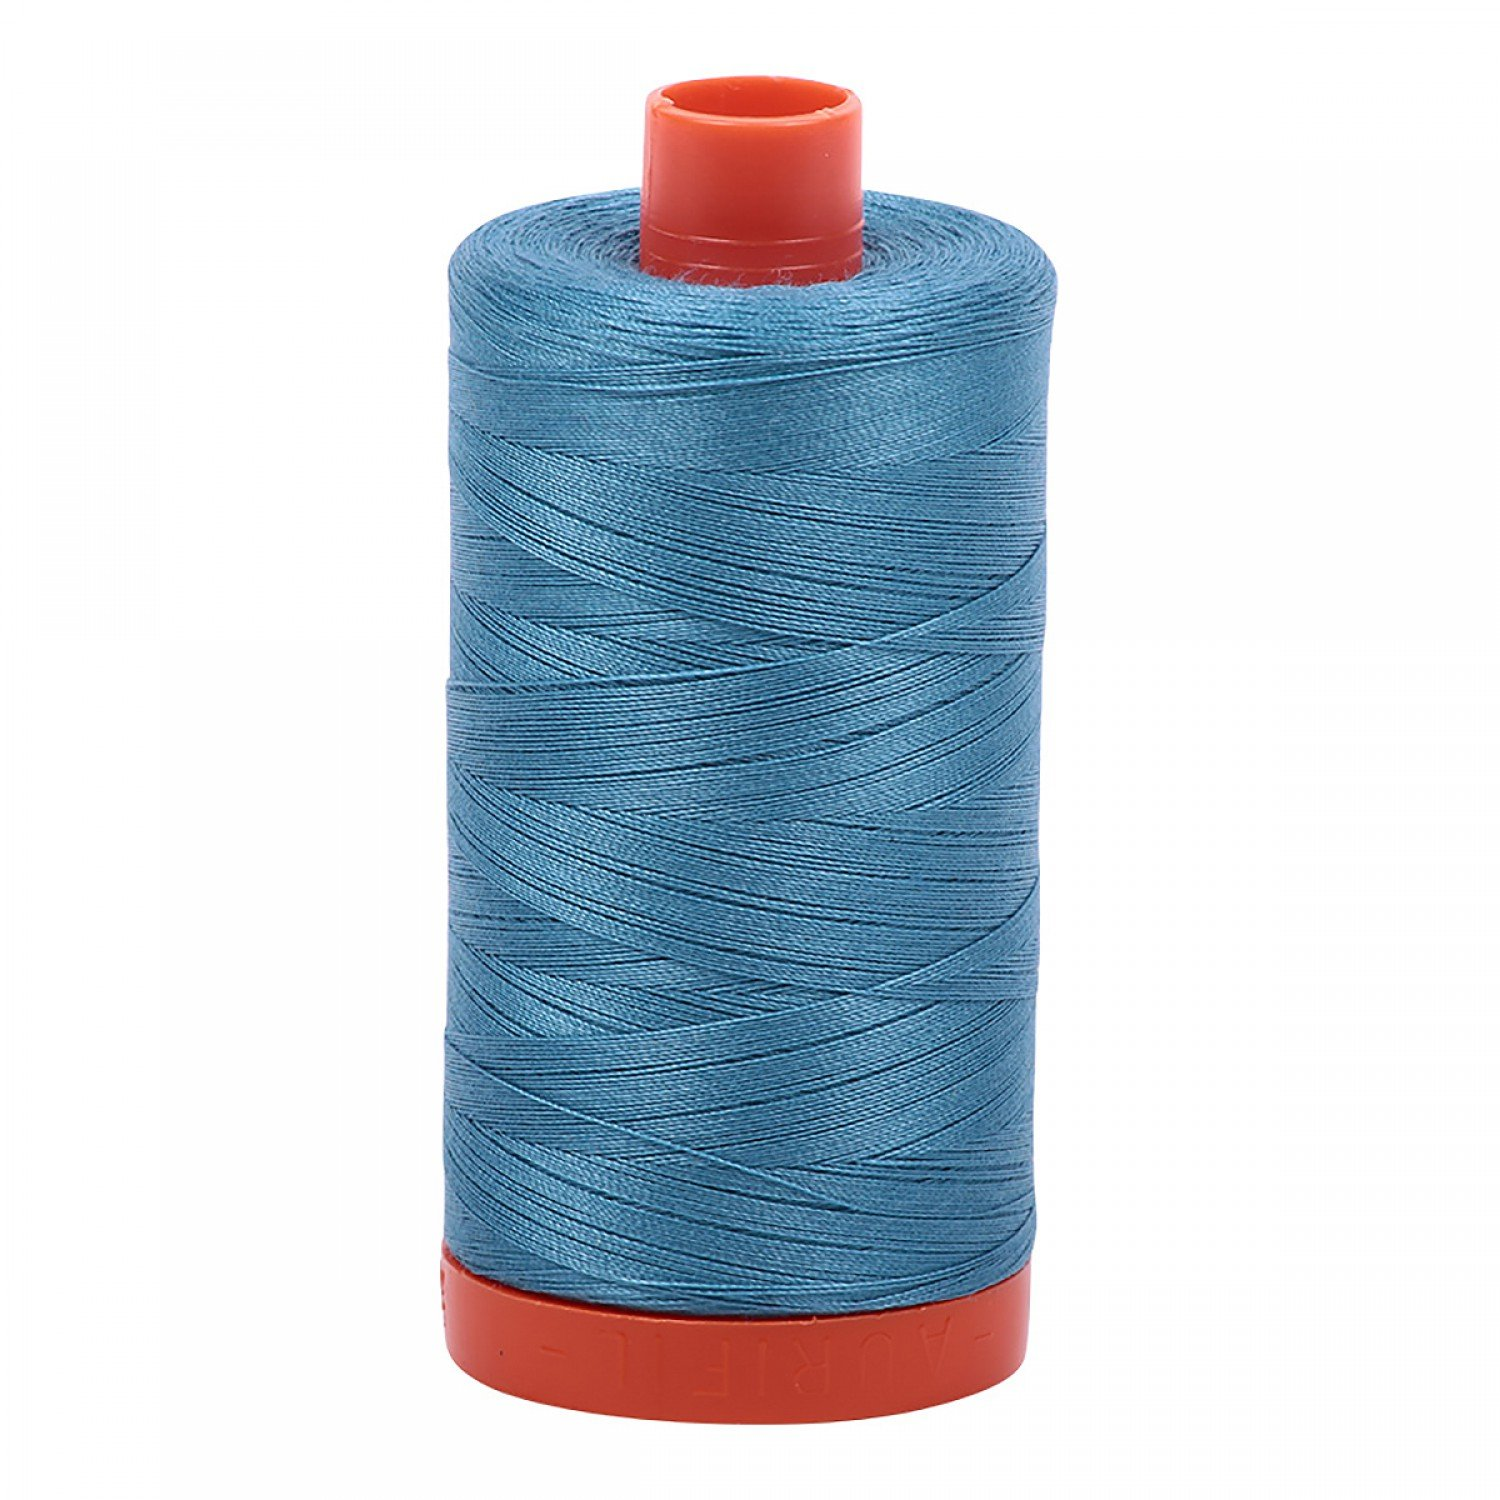 Aurifil 2815 - Mako Cotton Thread Solid 50wt 1422yds Teal